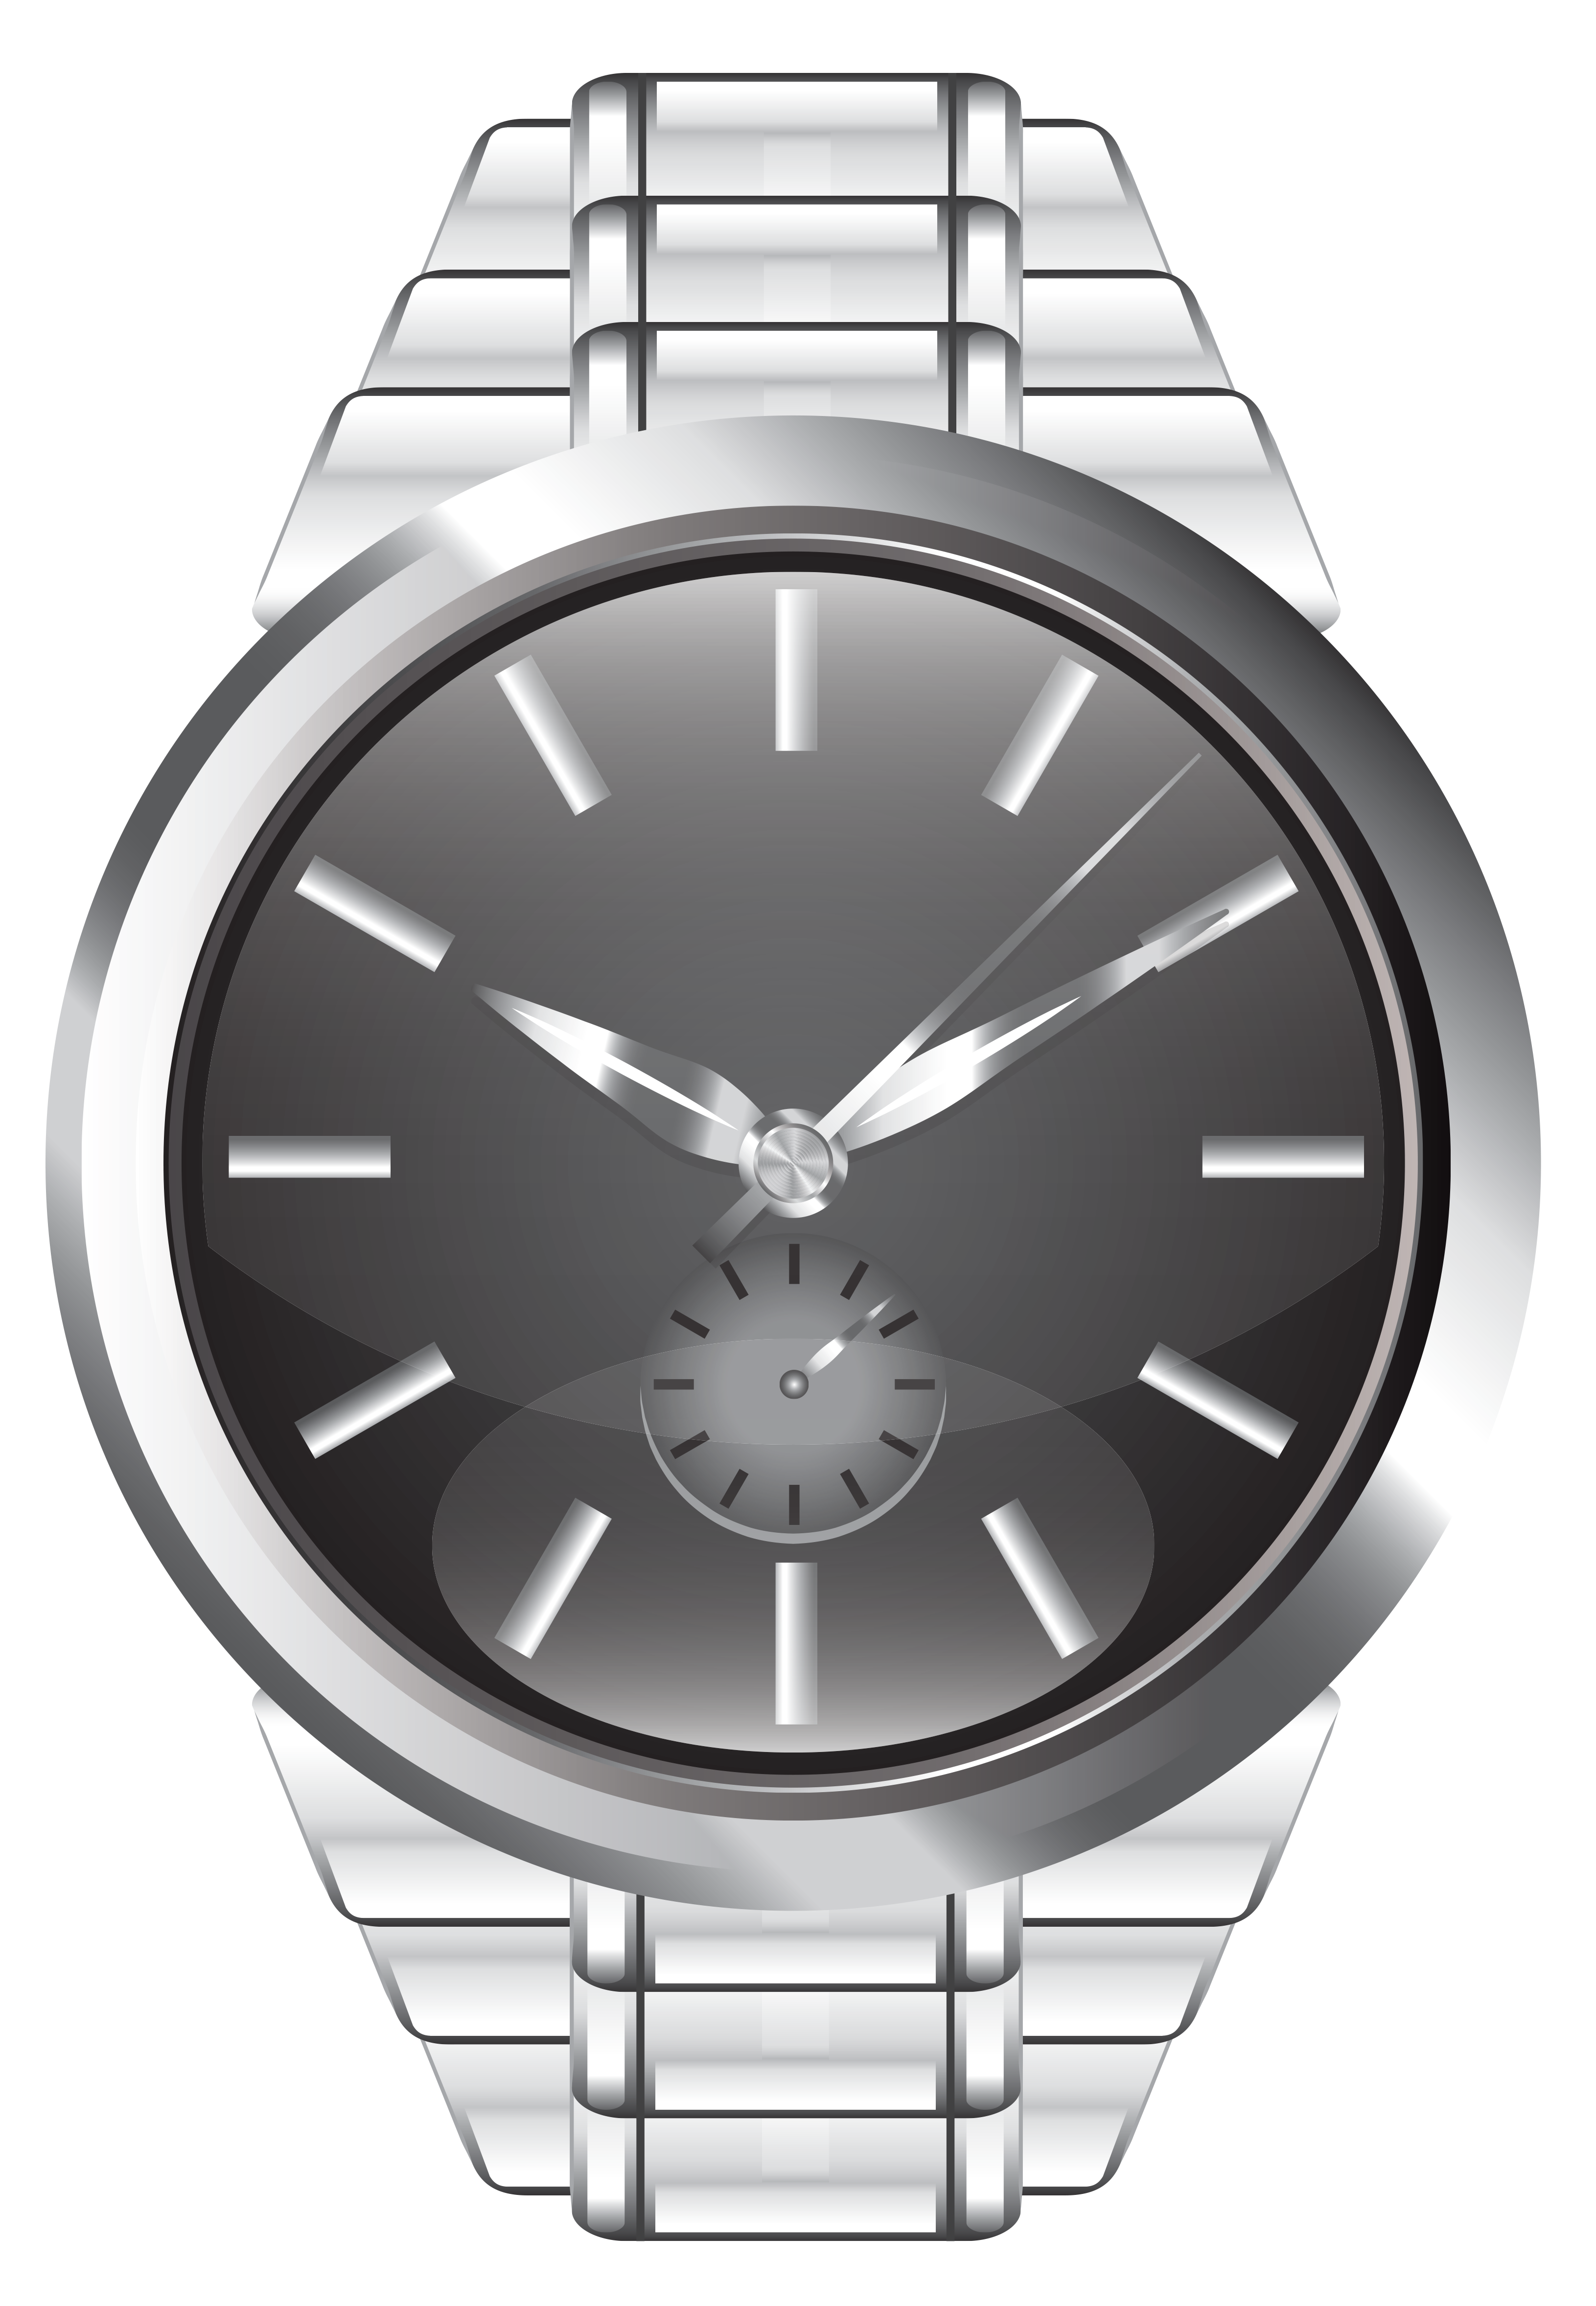 Wrist watch png clip. Clocks clipart mouse